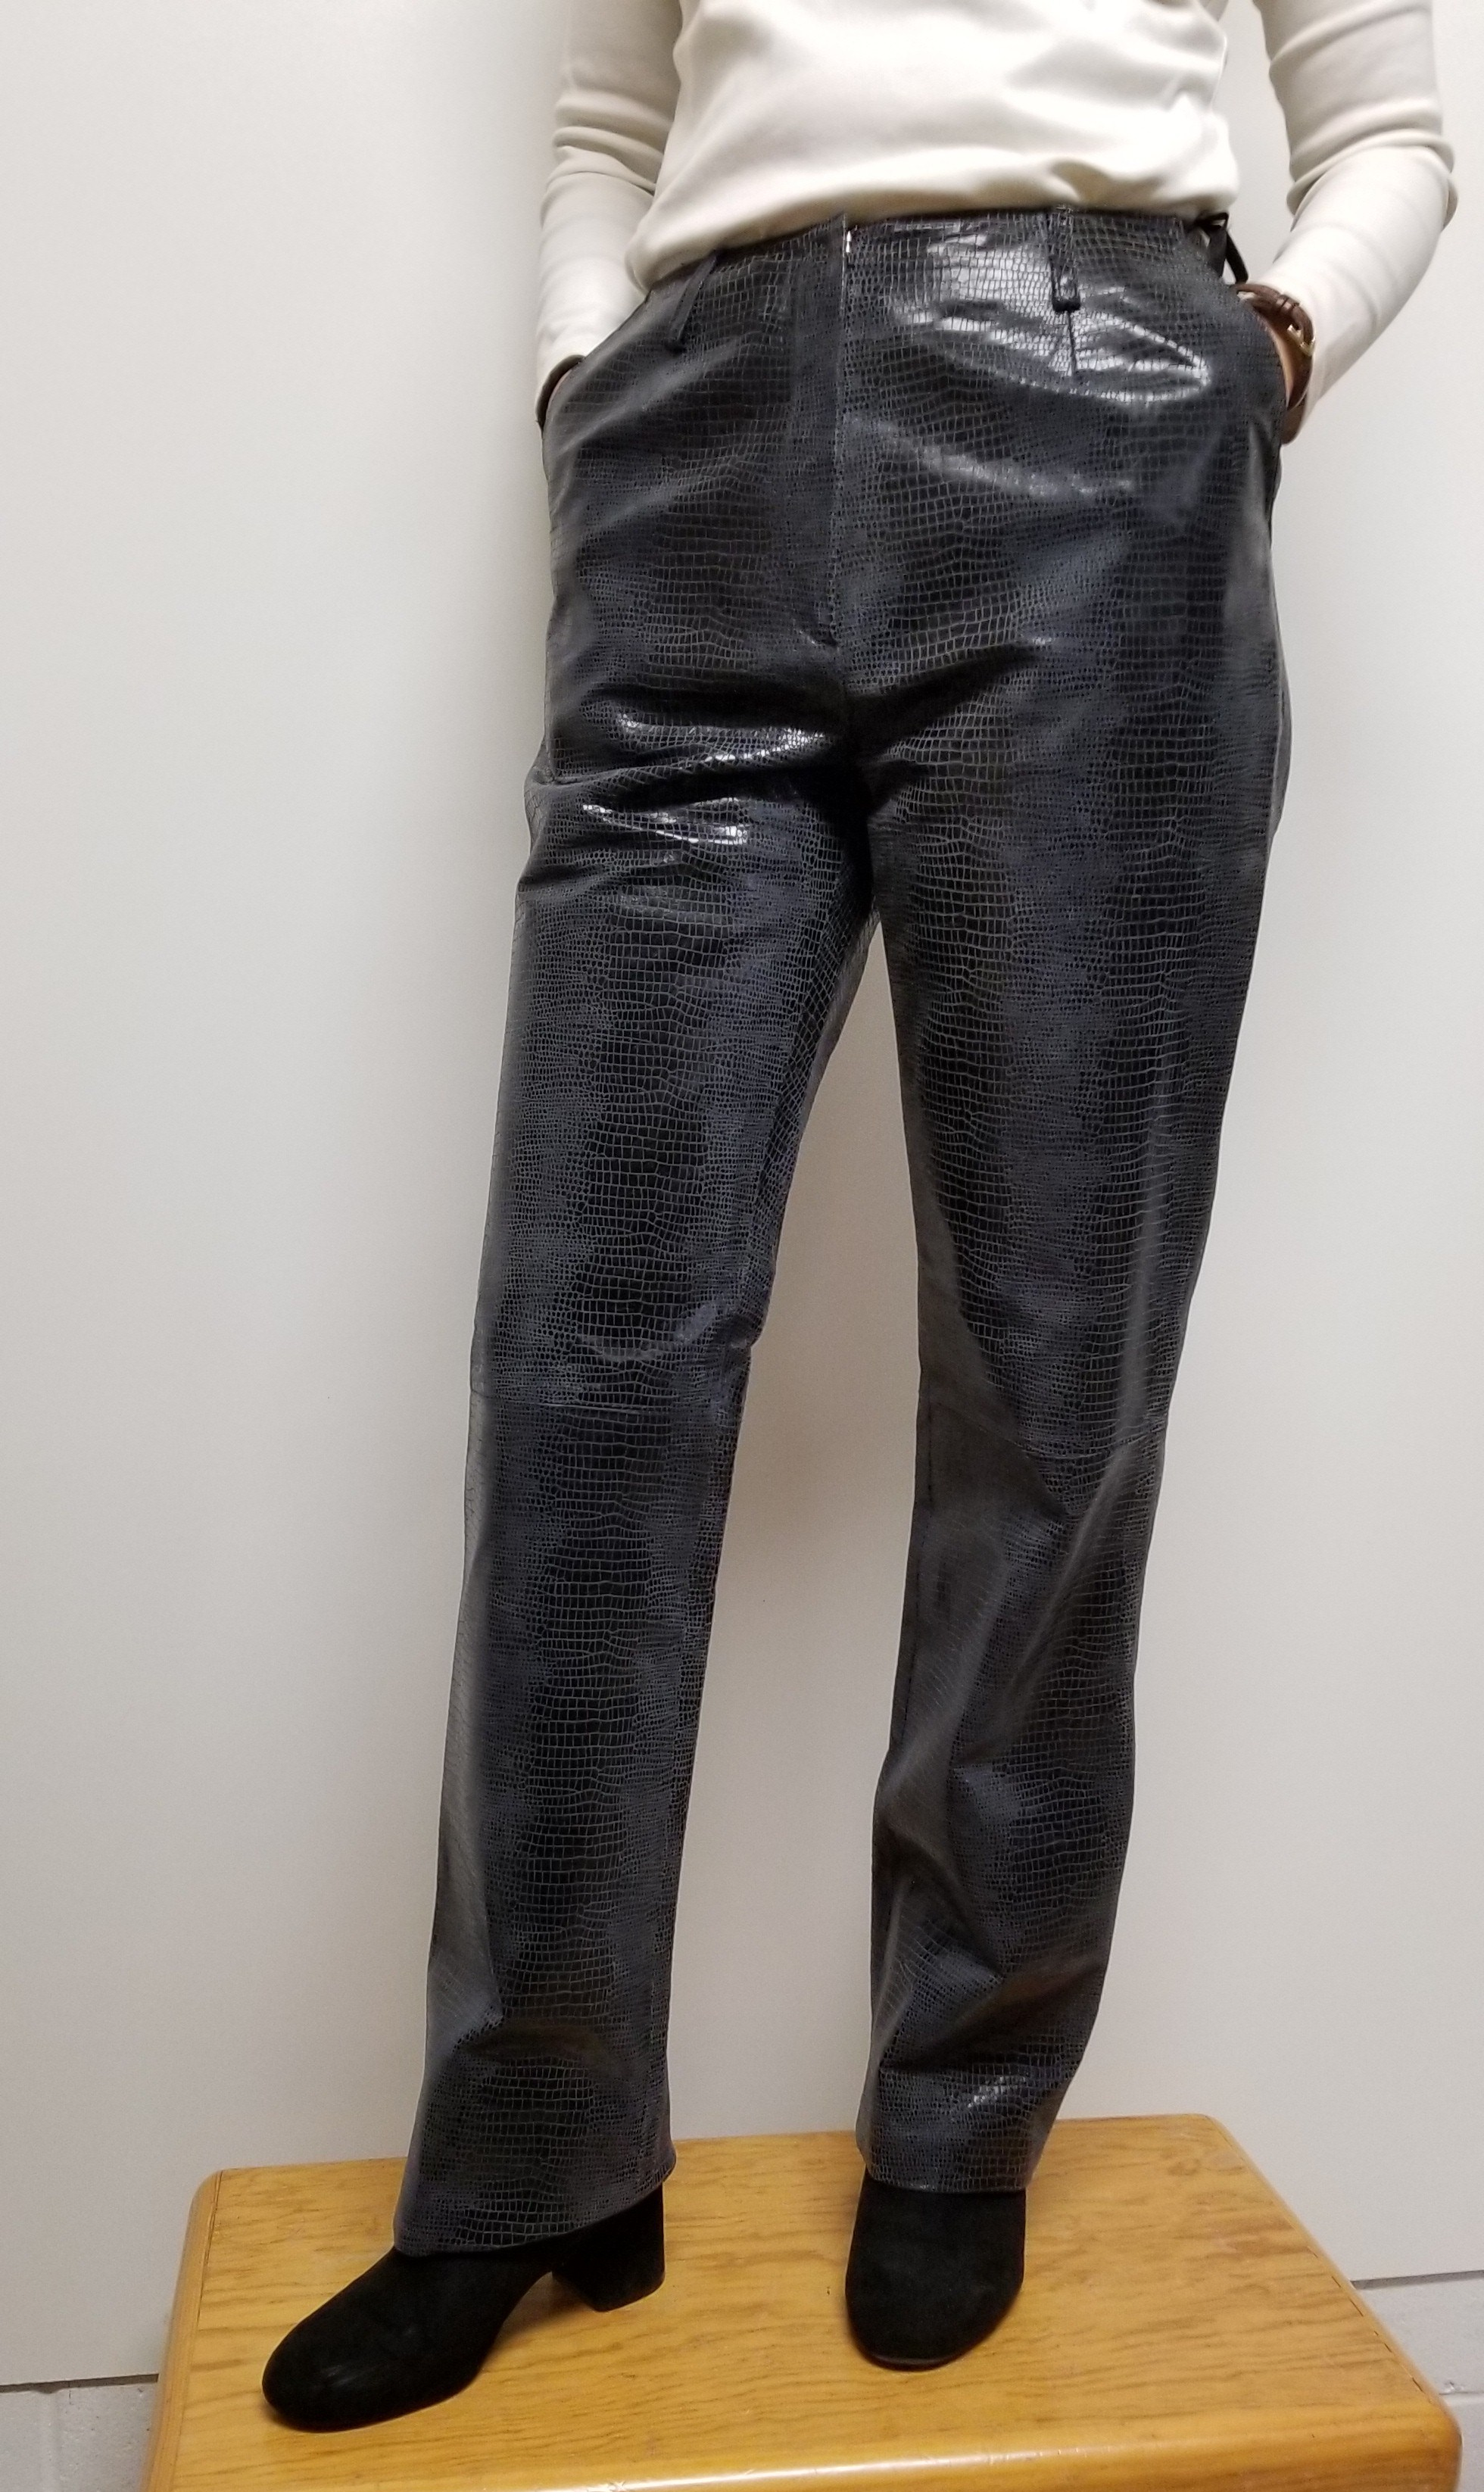 Women leather pants with animal print color Black on Gray